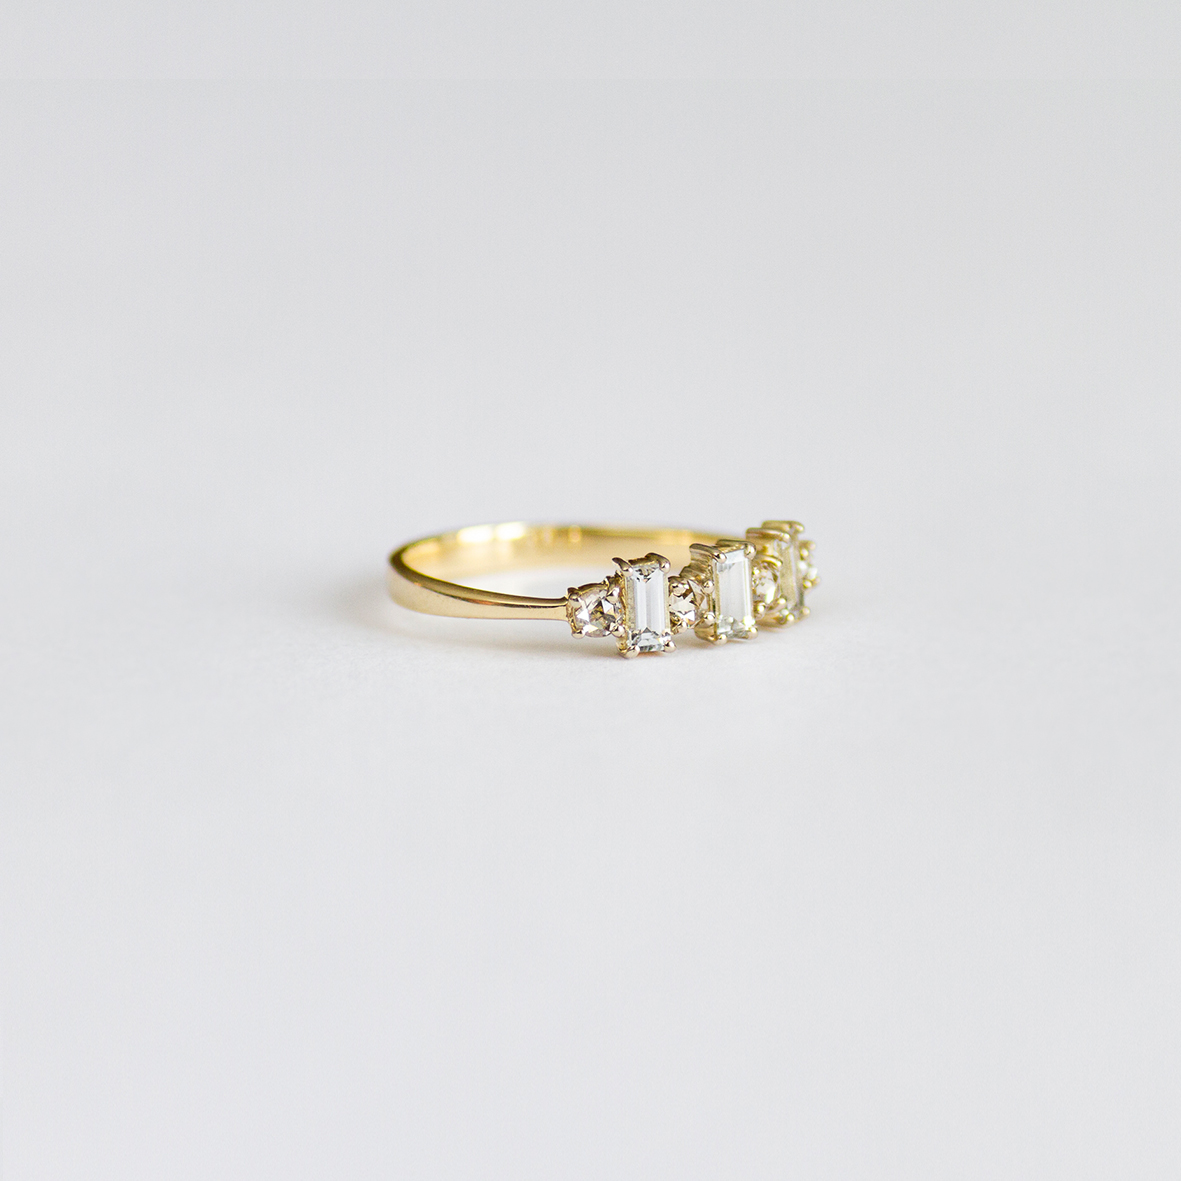 1. OONA_engagement_ficha2_sapphire and diamonds ring